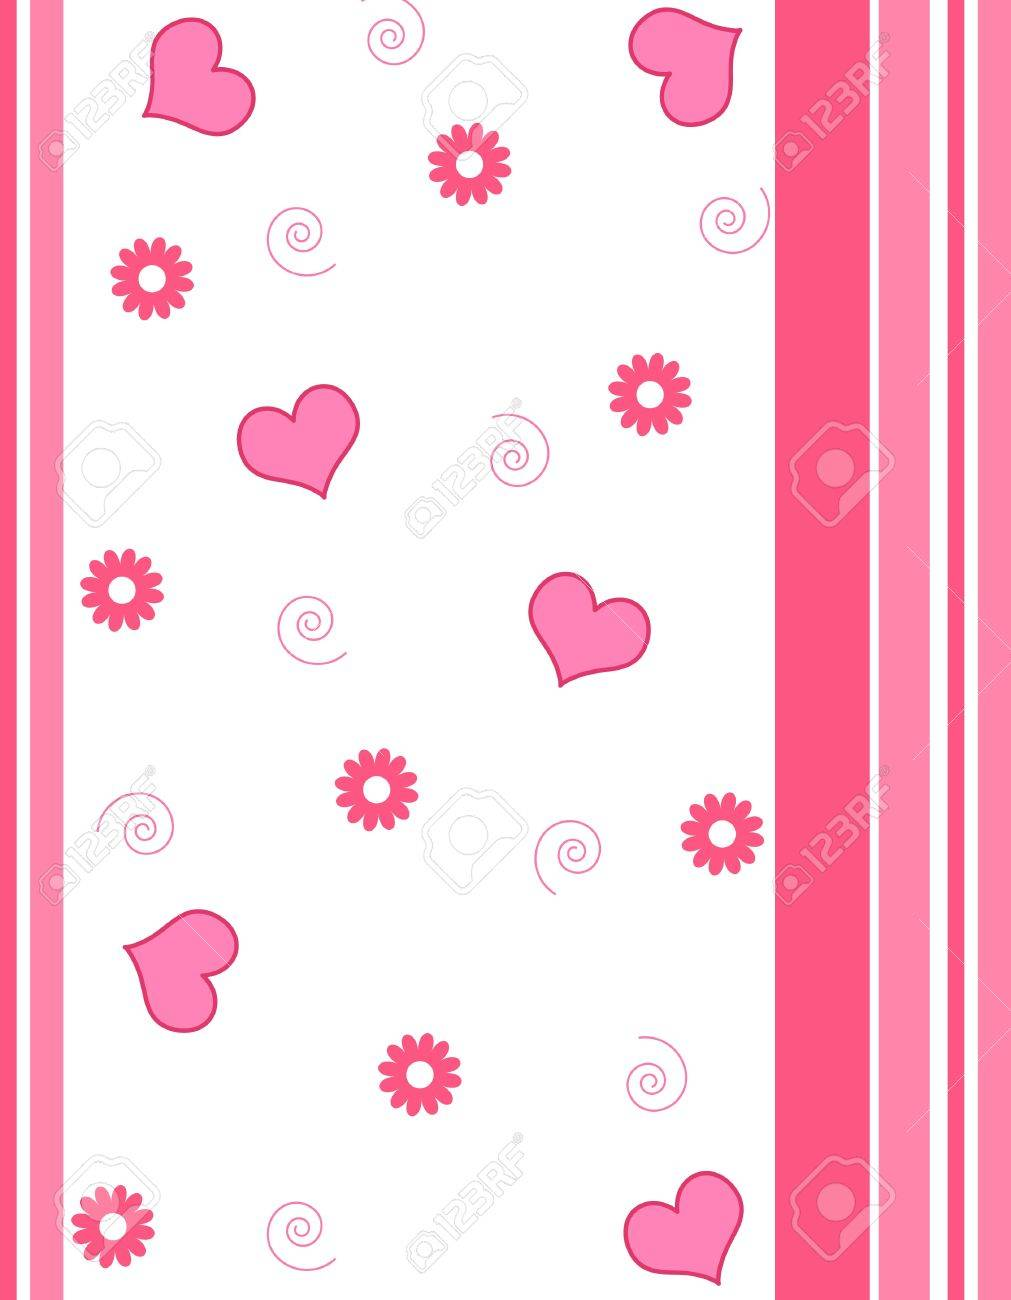 Hearts , flowers and stripes pattern Stock Photo - 13362060